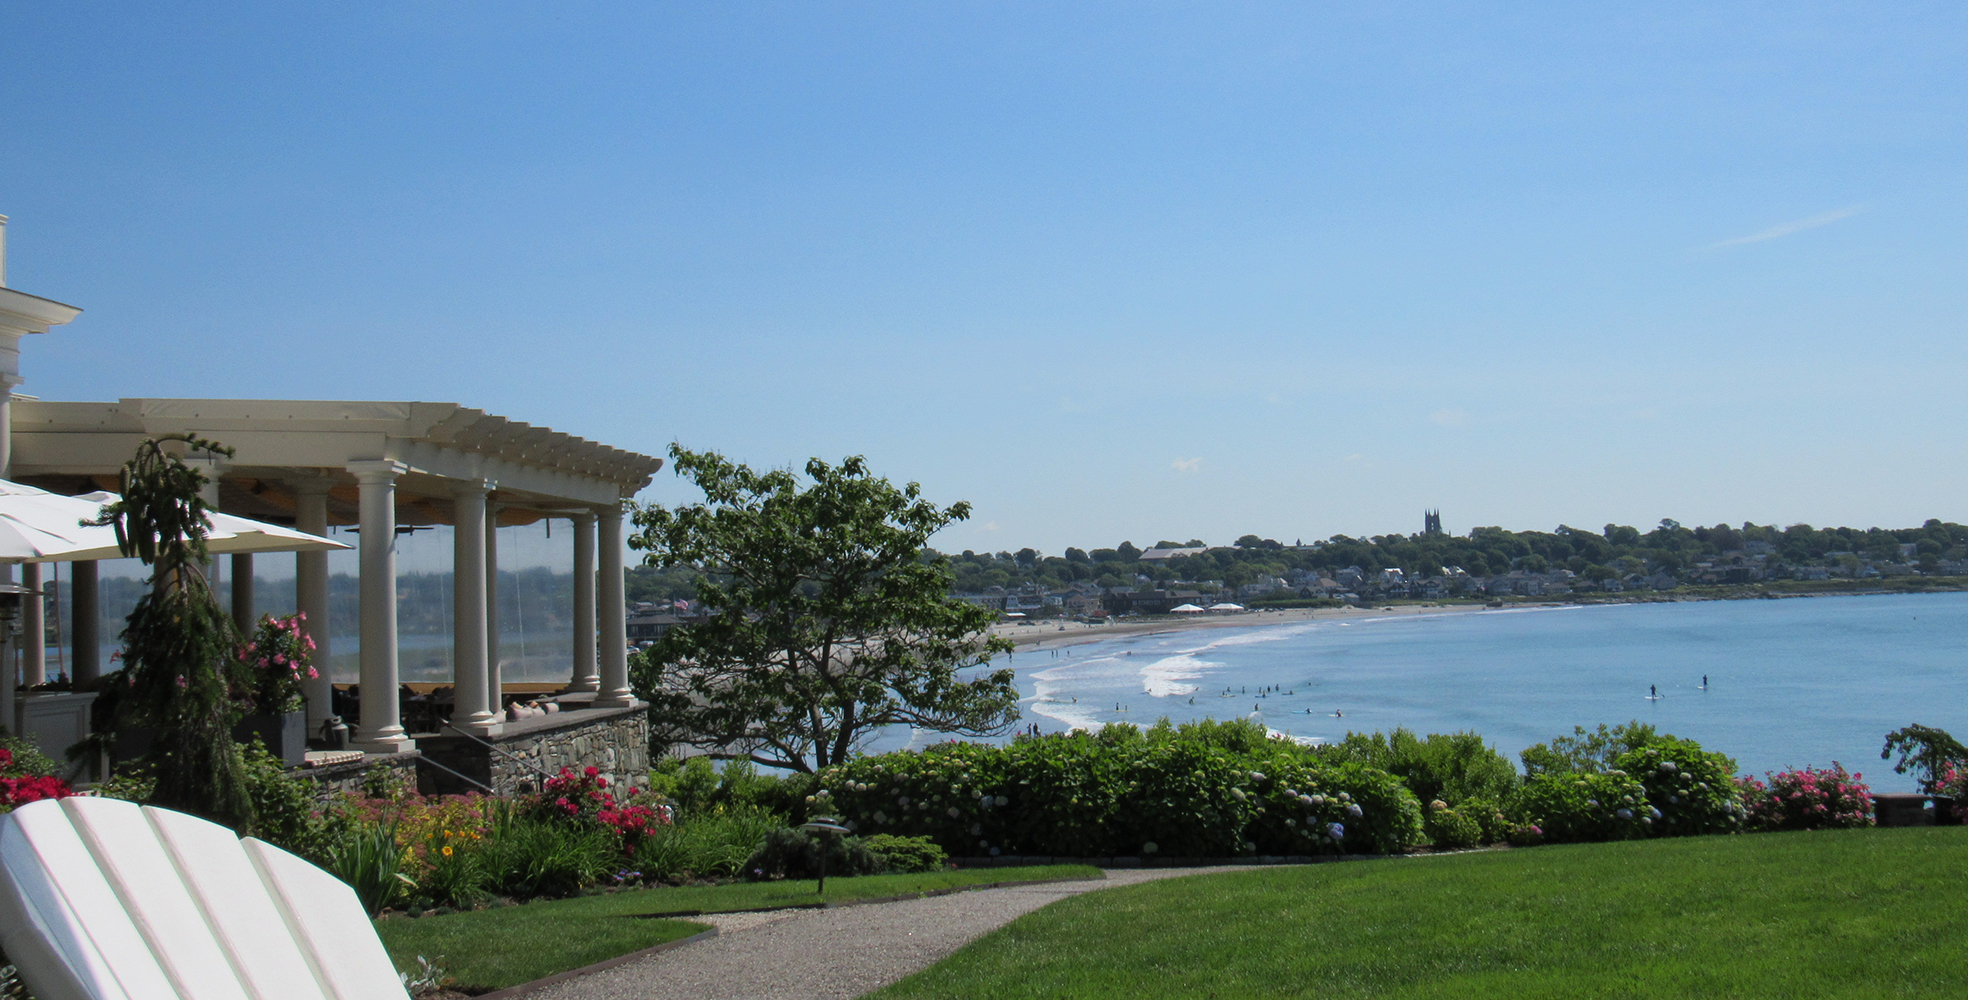 Easton's beach, view from the chanler lawn